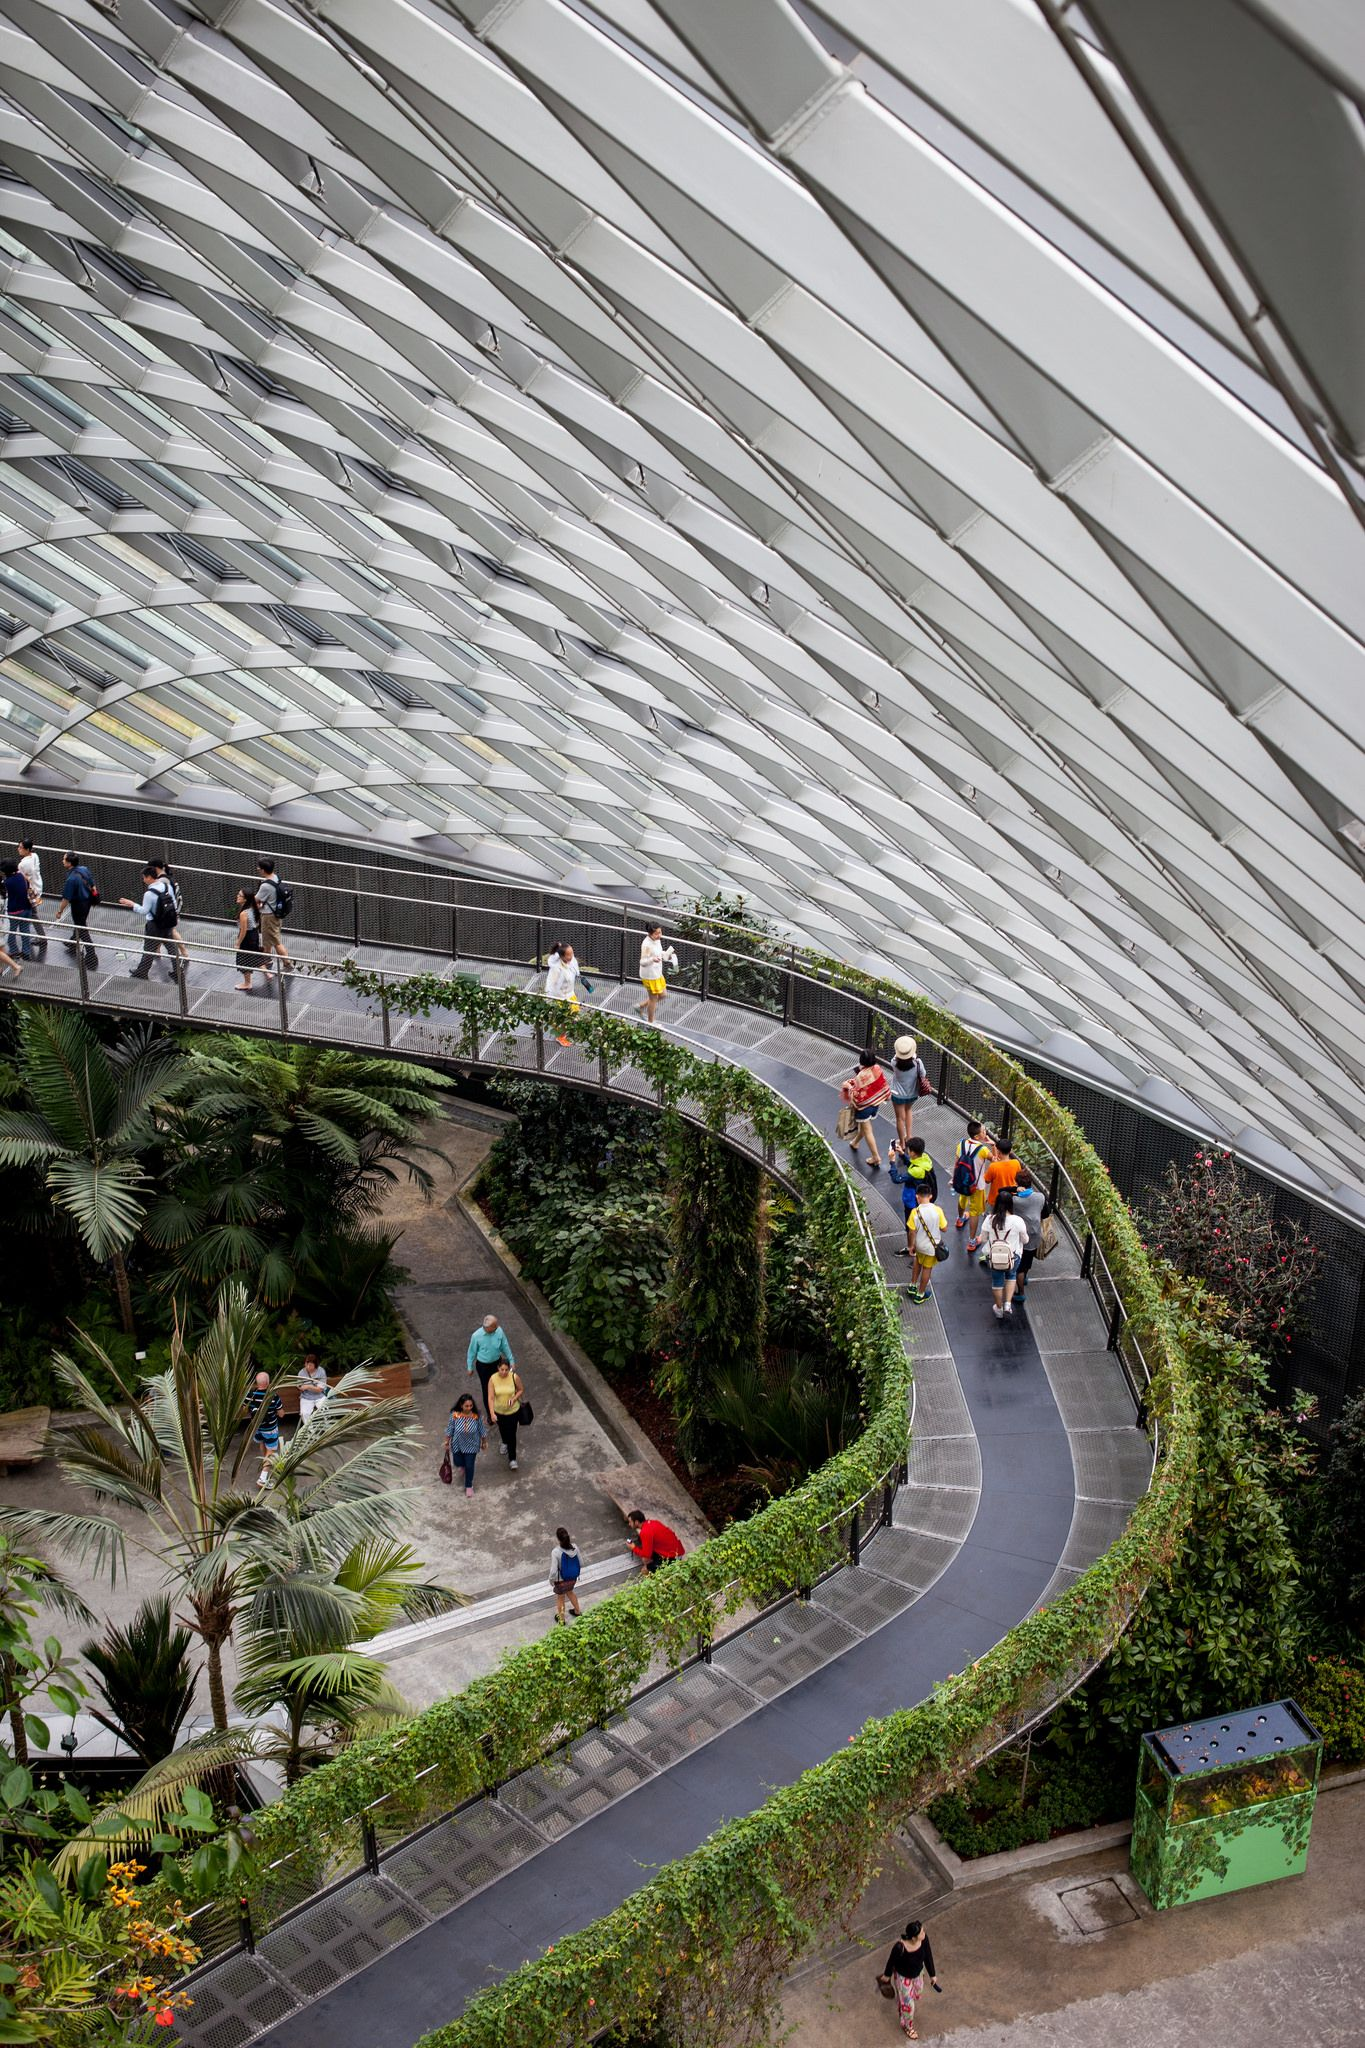 Gardens byBay in Singapore in 2020 Singapore, Futuristic